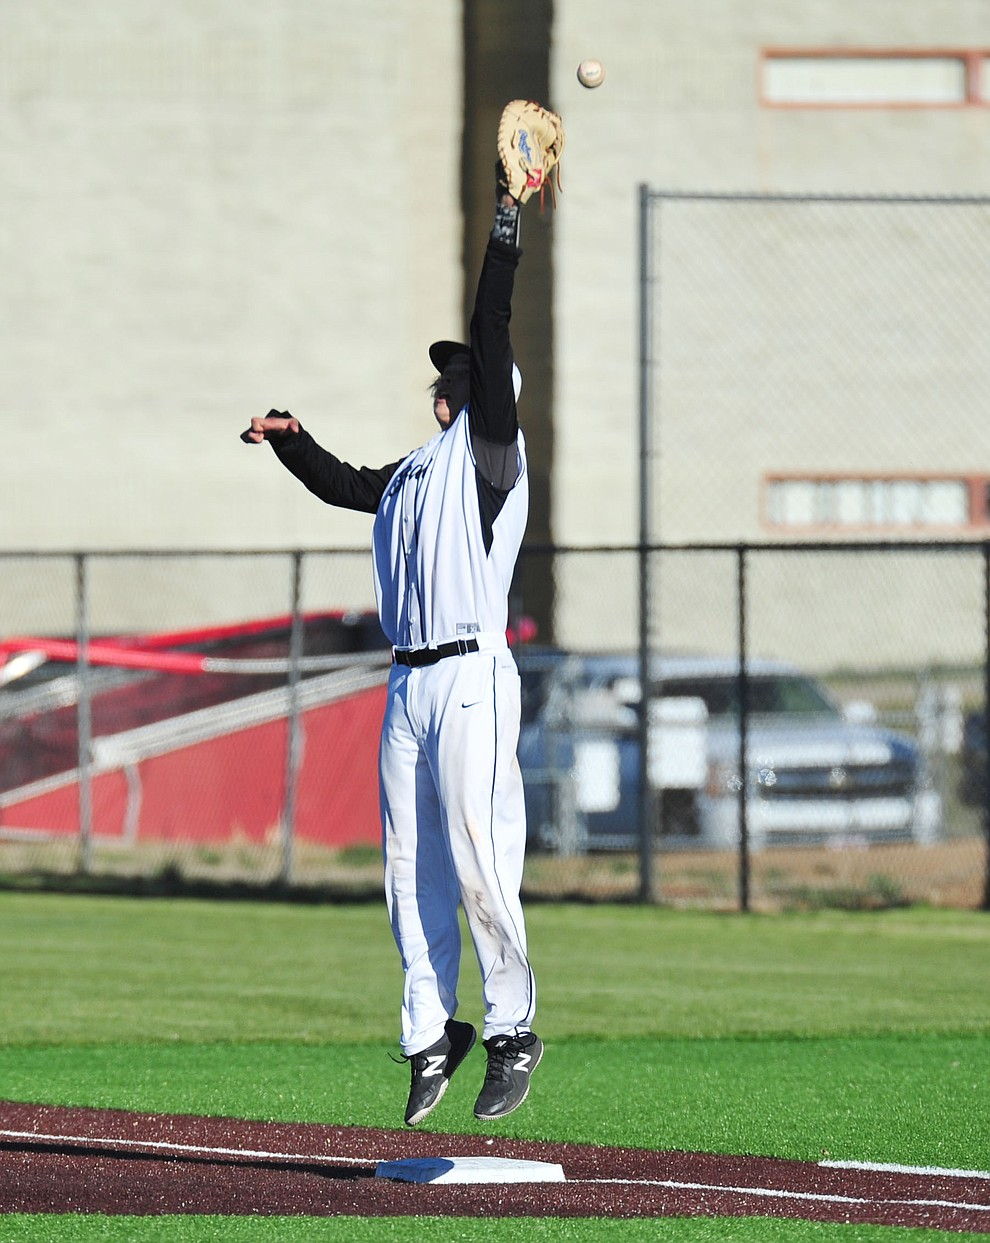 Bradshaw Mountain's Dane Holloway goes high for a throw as the Bears face Desert Edge Thursday, April 18 in Prescott Valley.  (Les Stukenberg/Courier)